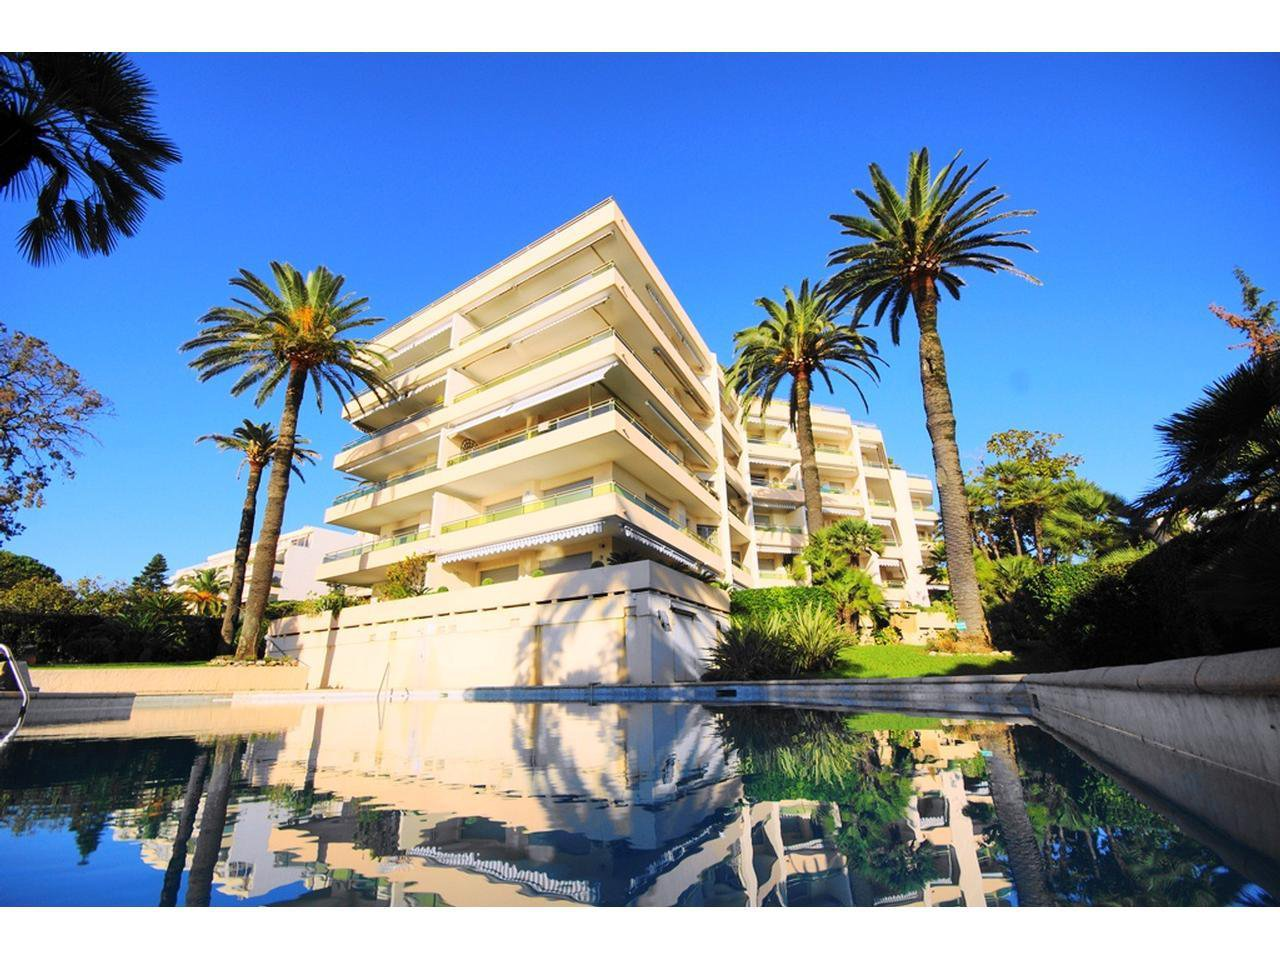 1 bedroom apartement for sale Cannes Palm Beach - Sea view